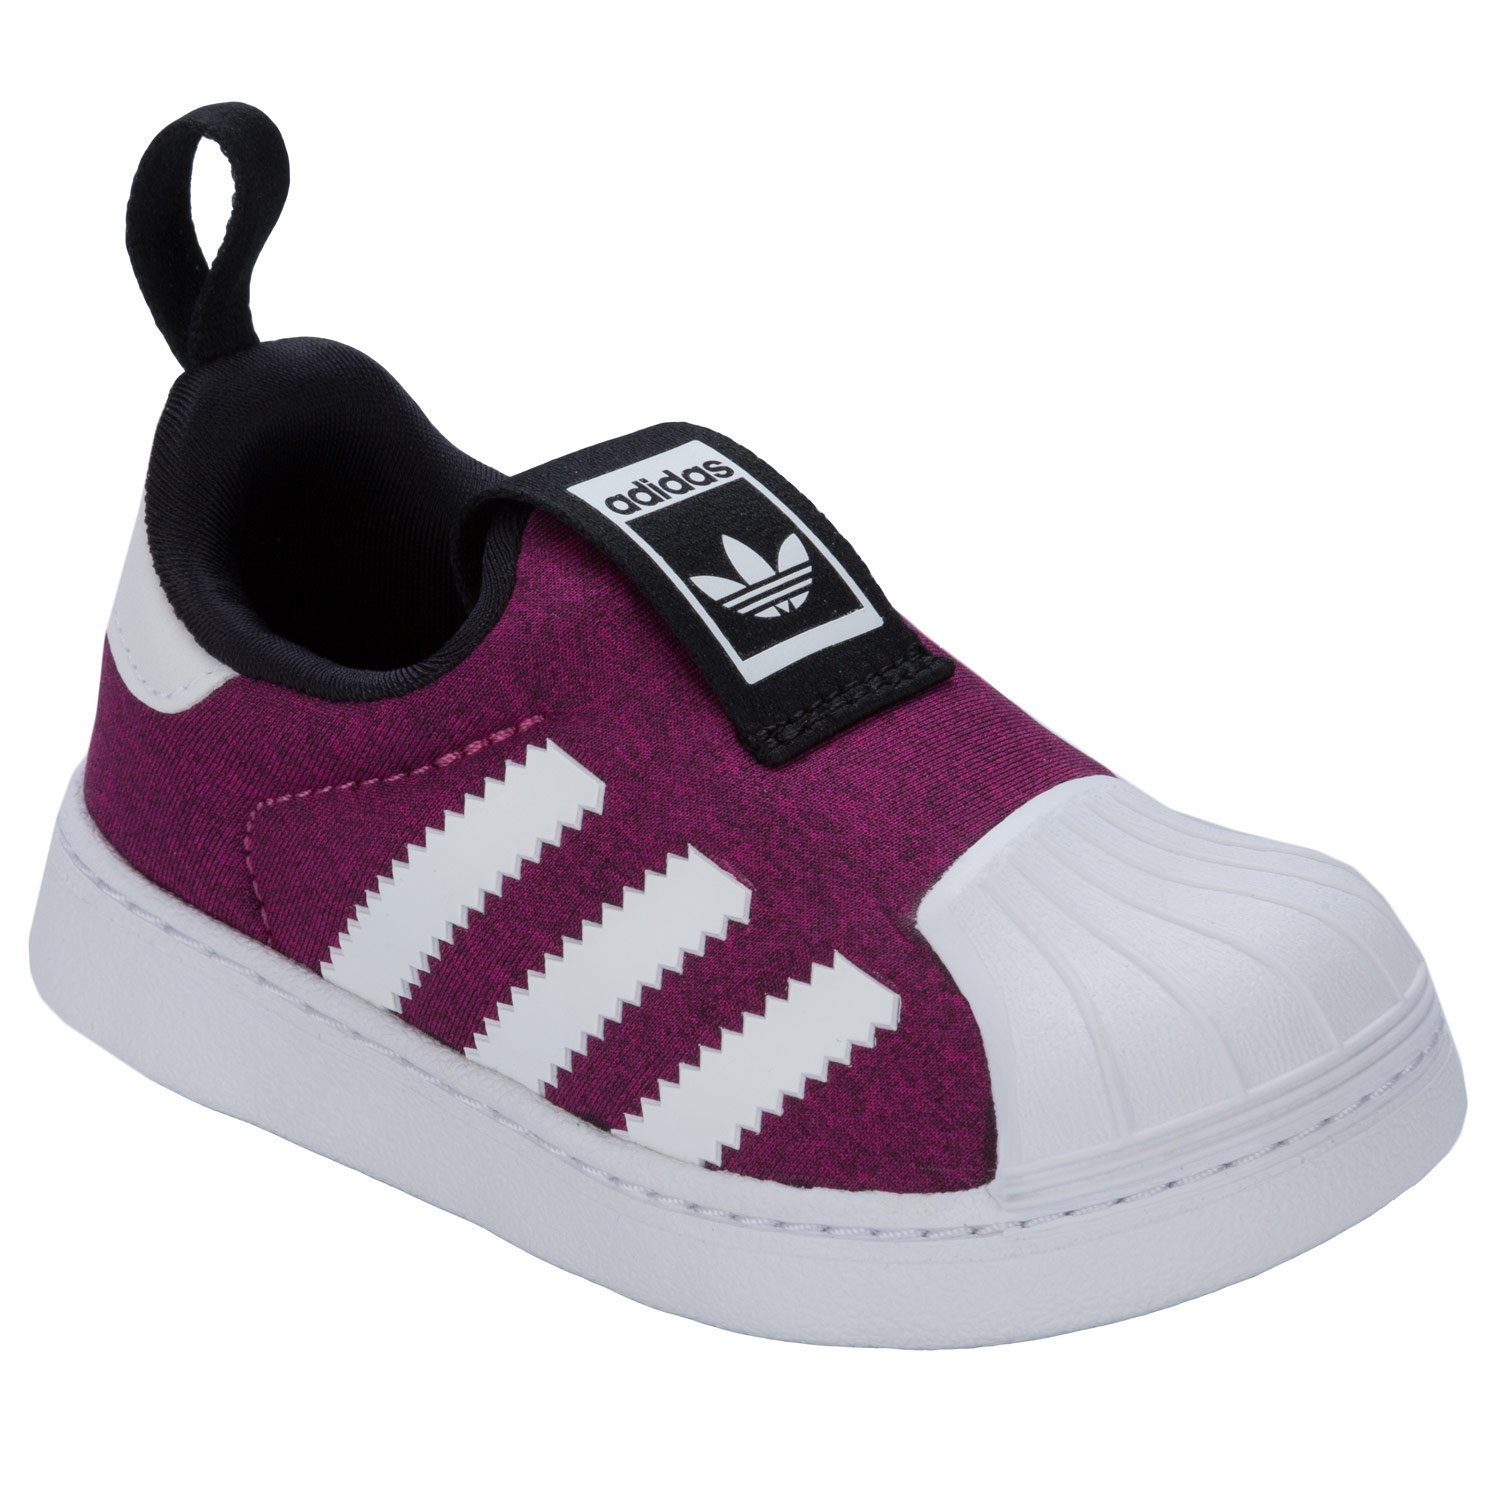 f89e4abf3083 adidas Girls Originals Infant Superstar 360 Trainers in Plum - 6.5 Infant   Amazon.co.uk  Shoes   Bags